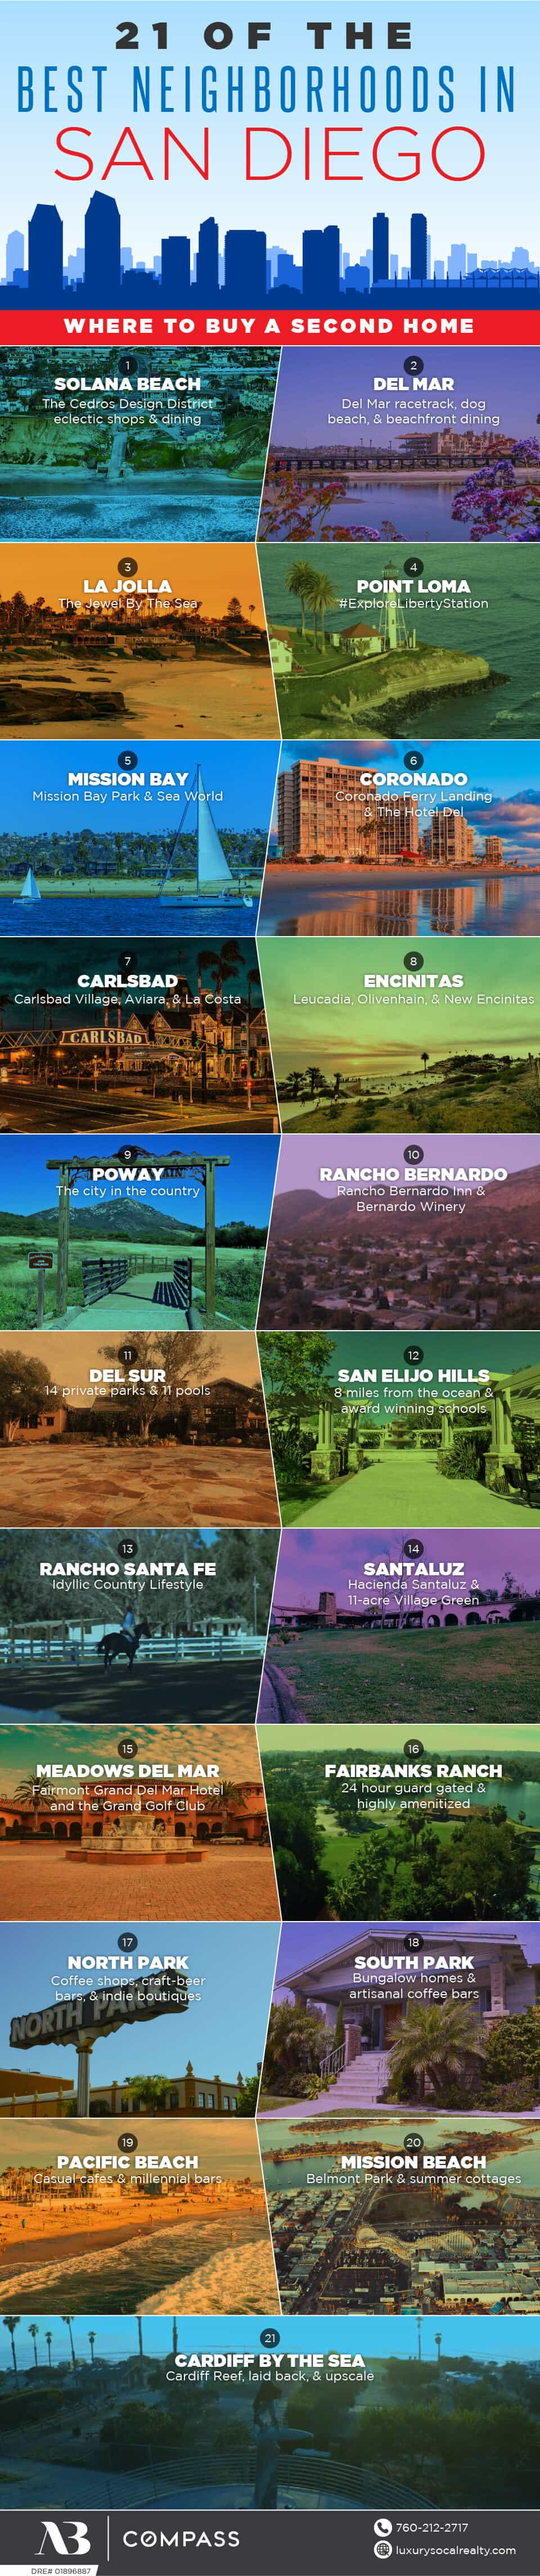 Moving To San Diego//Moving To San Diego Tips//Moving To San Diego Home//Moving To San Diego Real Estates//Moving To San Diego California//Having thoughts of moving to San Diego?  Discover our Relocating To San Diego Guide and learn things to know before moving to San Diego.  Our moving to San Diego where to live guide has everything you need to know finding the best neighborhoods, where to live alone, for retirees, & families by Joy Bender Luxury Real Estate Agent Compass San Diego REALTOR&reg